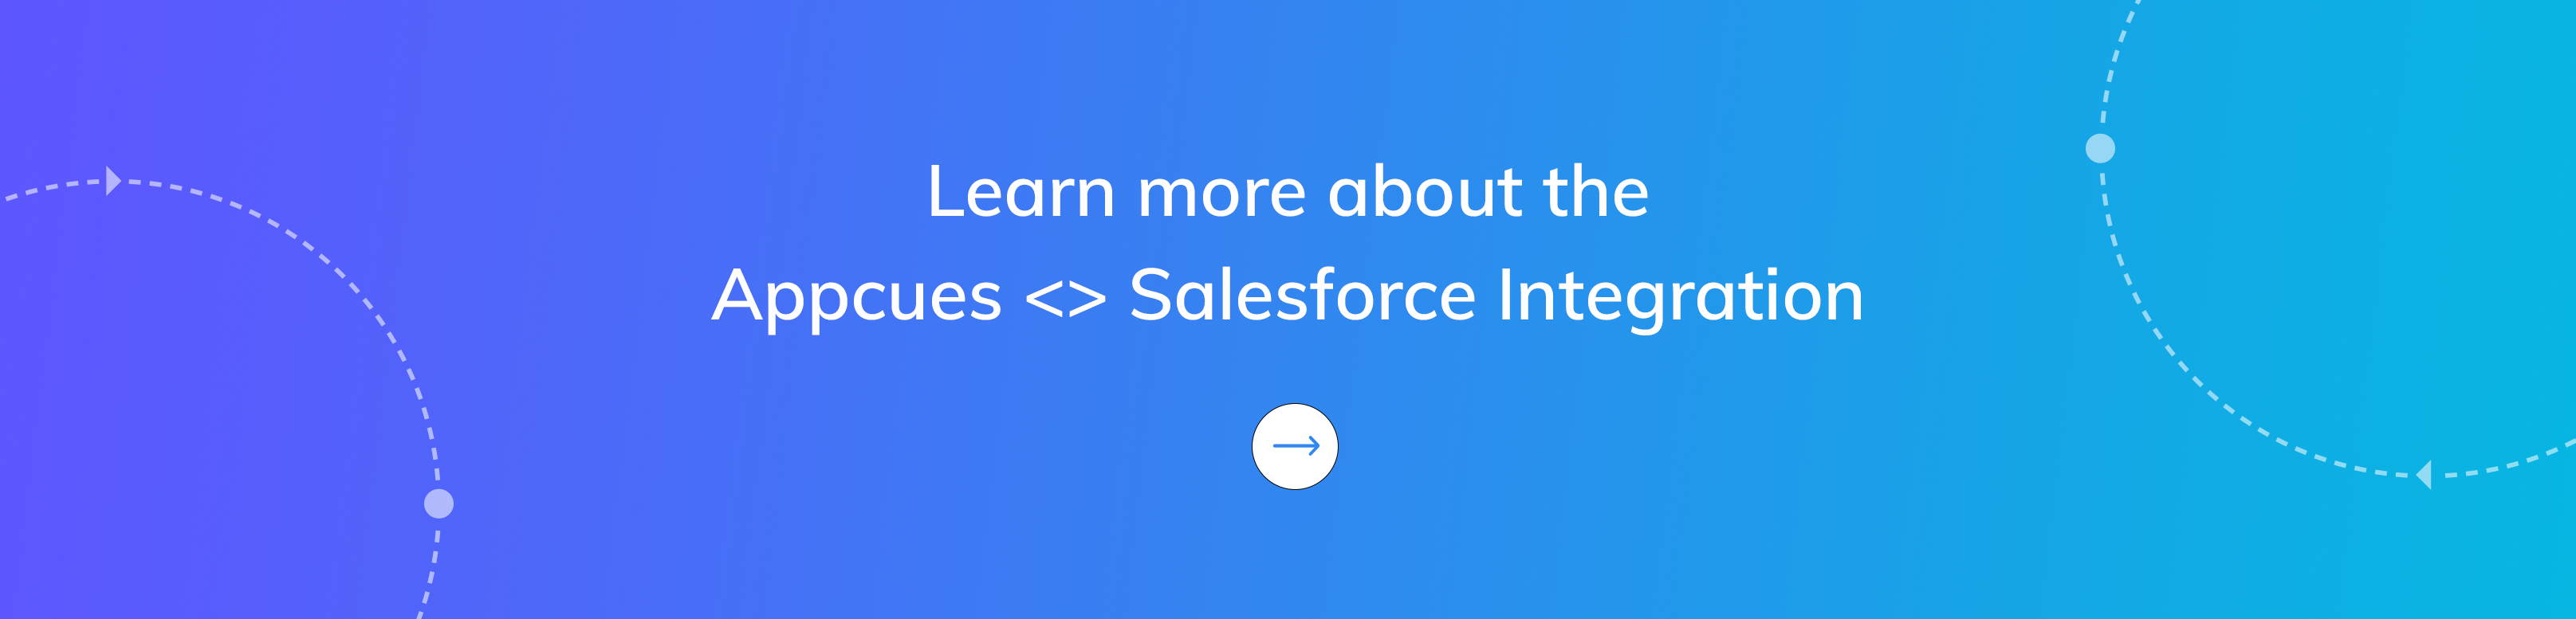 Click here to learn more or talk to a product specialist about the Appcues Salesforce Integration.